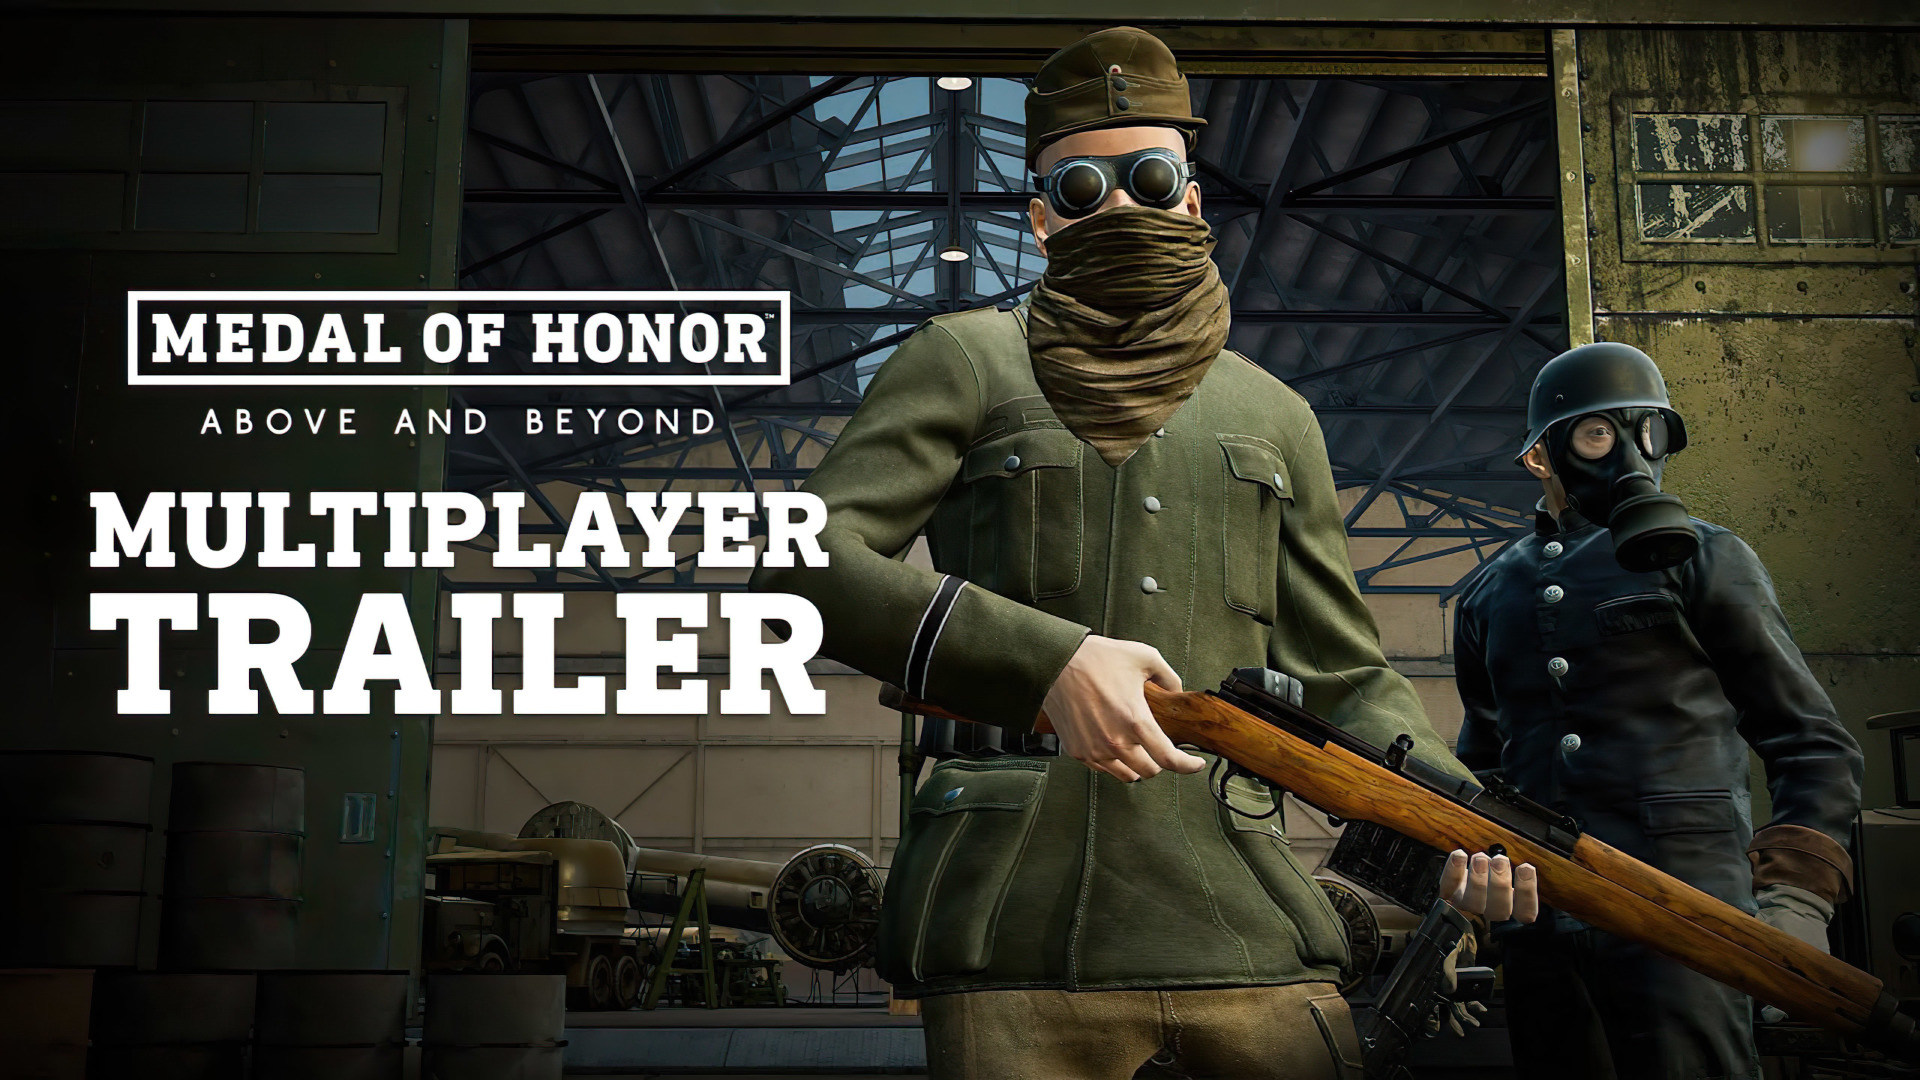 Trailer, Electronic Arts, Ego-Shooter, Ea, Shooter, Virtual Reality, VR, Multiplayer, Oculus, Medal of Honor, Respawn Entertainment, Medal of Honor: Above and Beyond, Above and Beyond